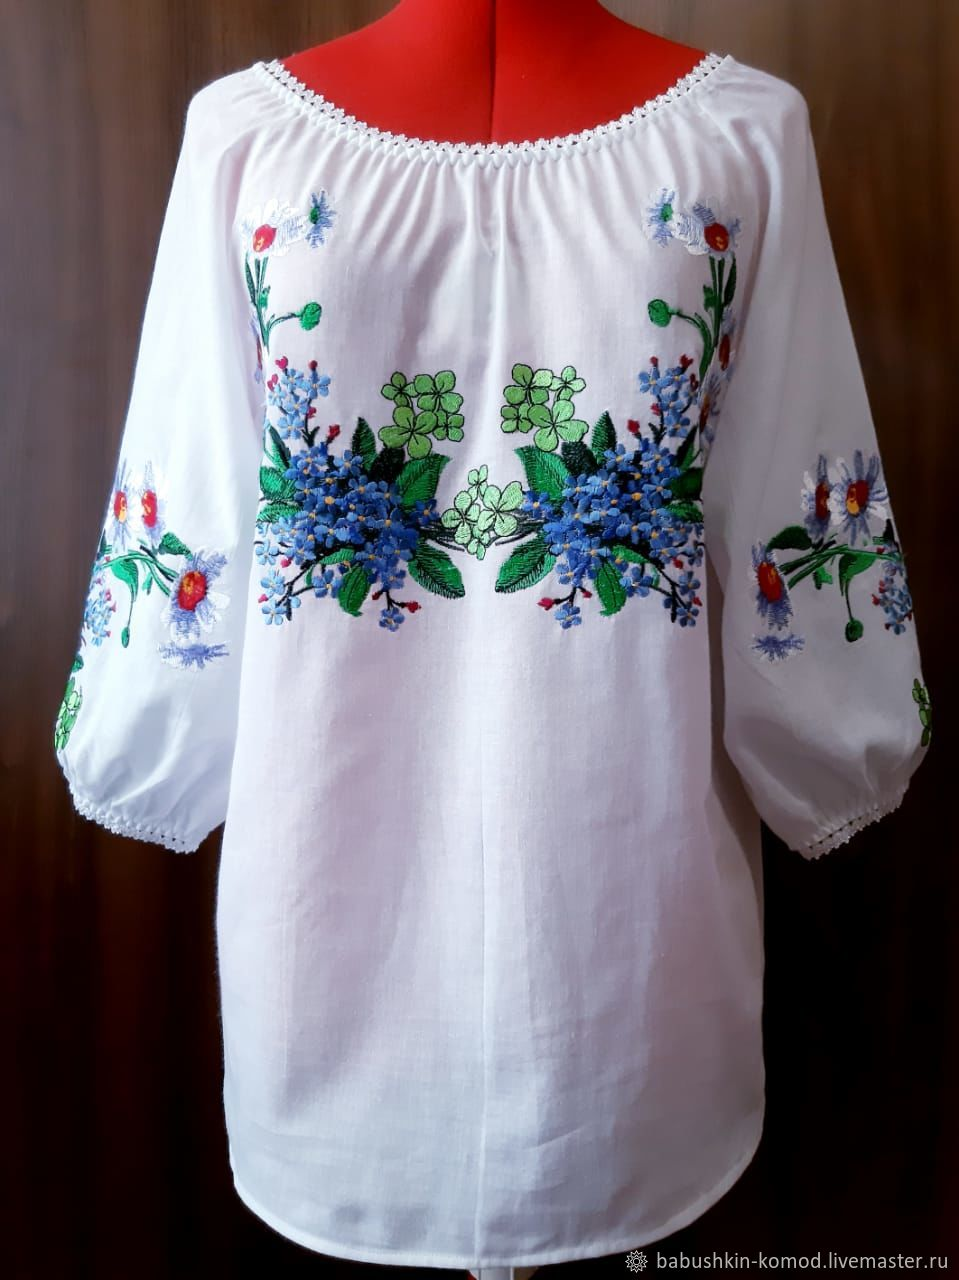 Women's embroidered blouse 'Spring bouquet' ZHR2-211, Blouses, Temryuk,  Фото №1